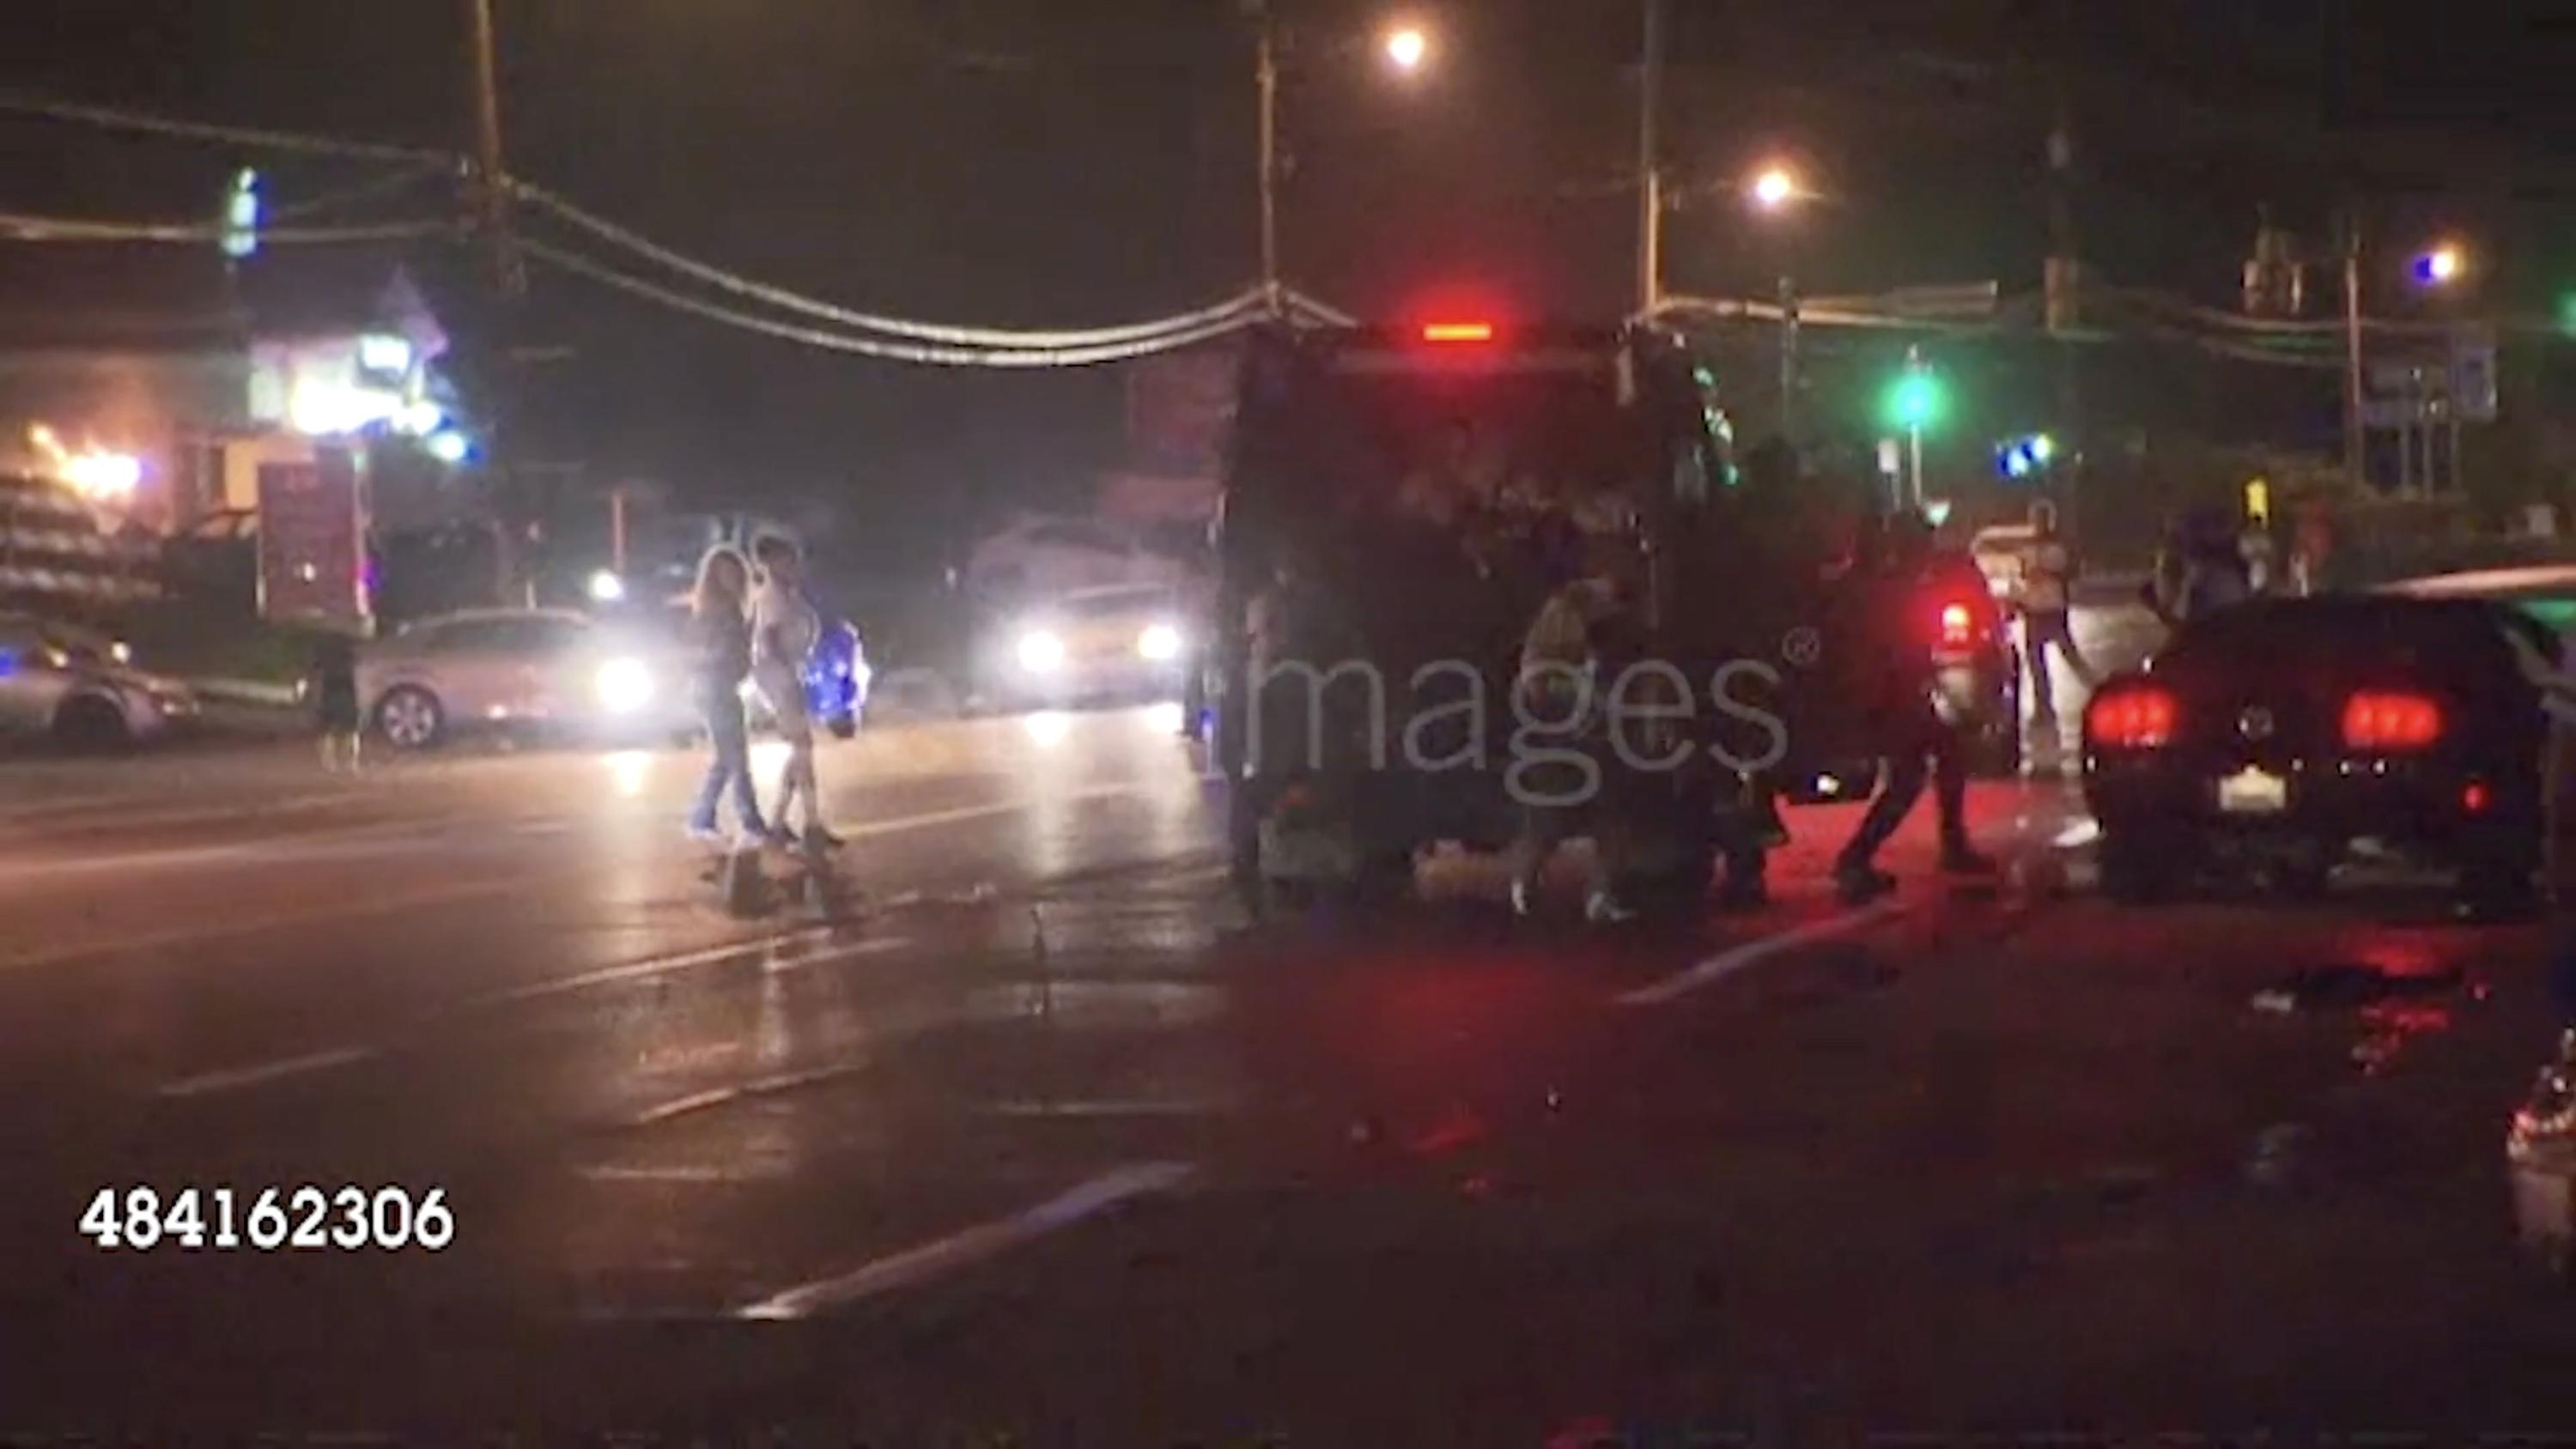 What appears to be a film still of a police or SWAT van on a street at night is watermarked with a Getty Images logo. People are walking on the street and emptying out the back of the van.